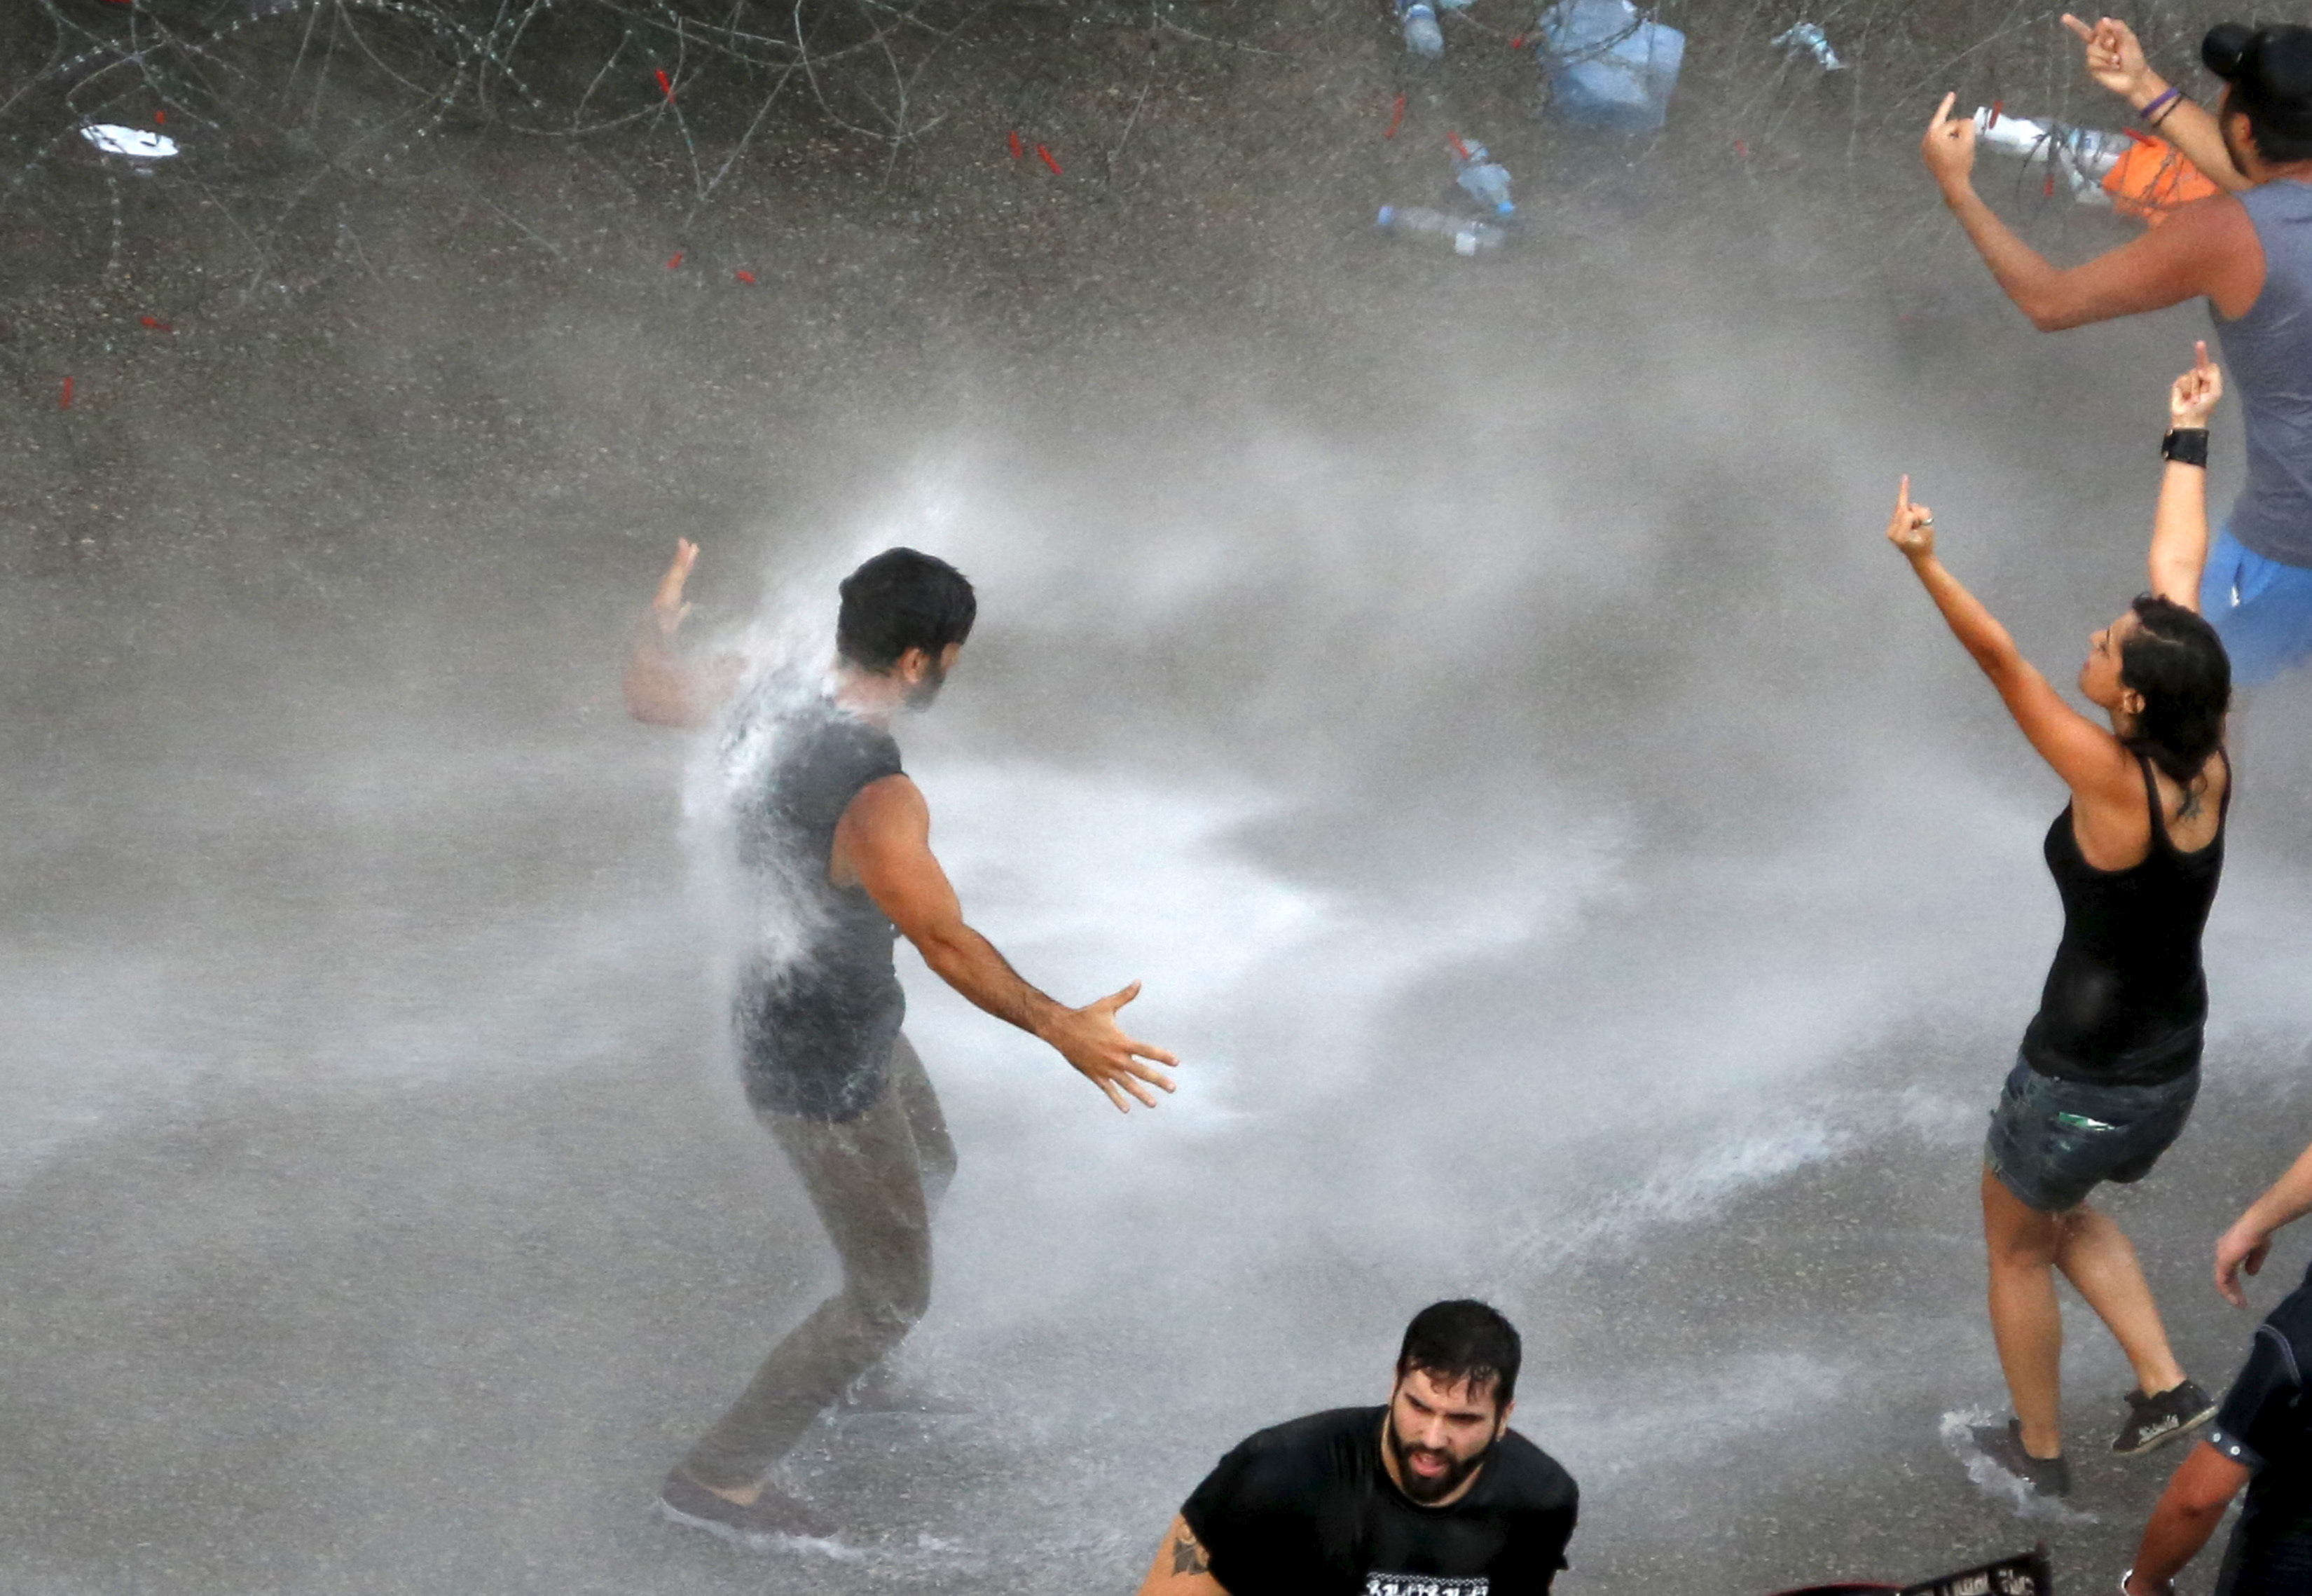 Lebanese protesters are sprayed with water during a demonstration against corruption and garbage collection problems near the government palace in Beirut on Aug. 22. Photo by Jamal Saidi/Reuters